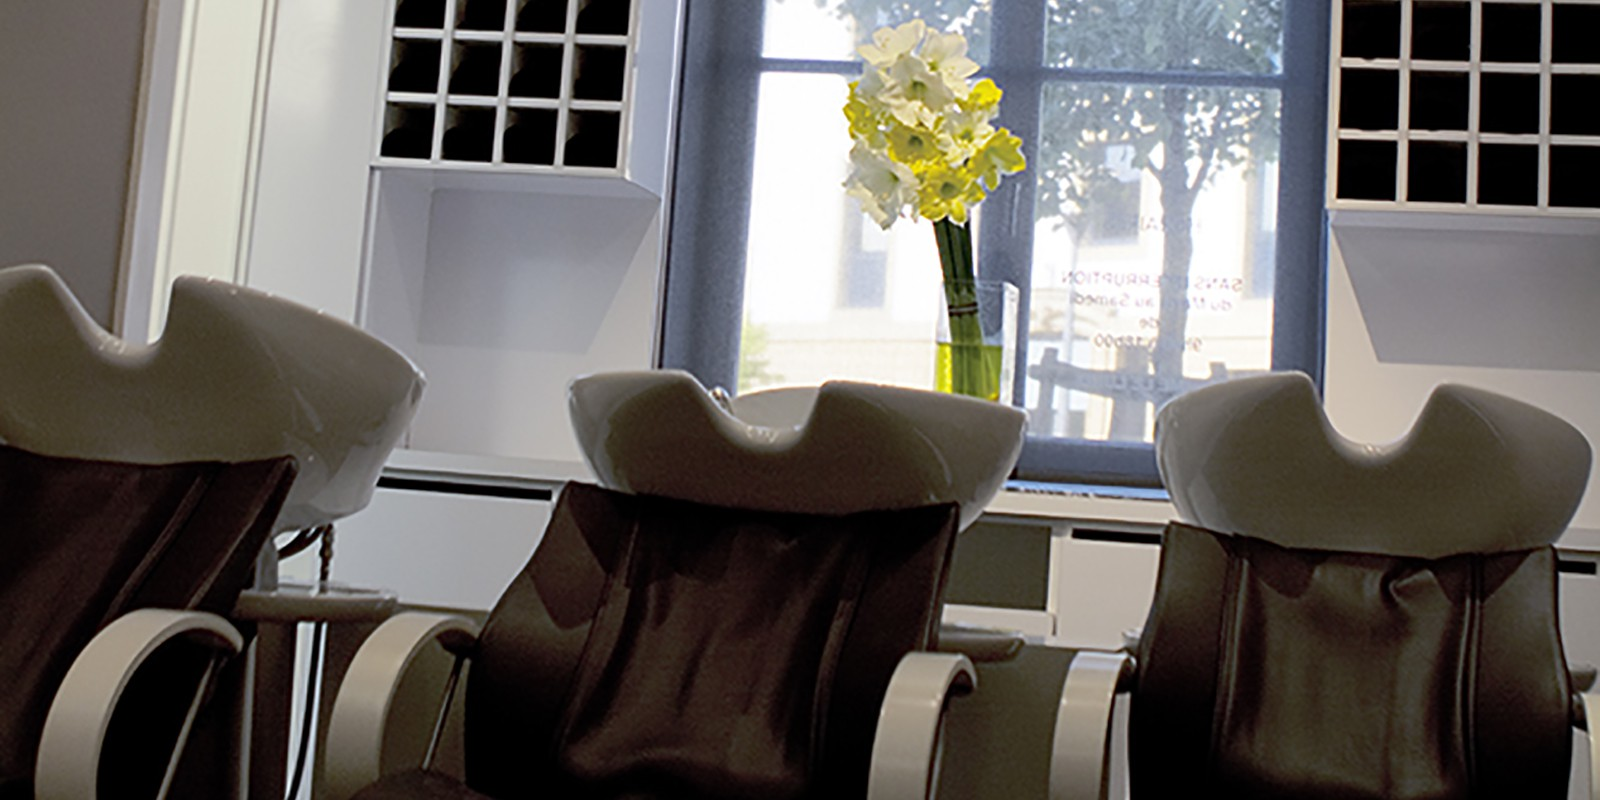 Salon Coiffure Metz Jacques Thill Metz Salons In Metz The Leading Salons Of The World